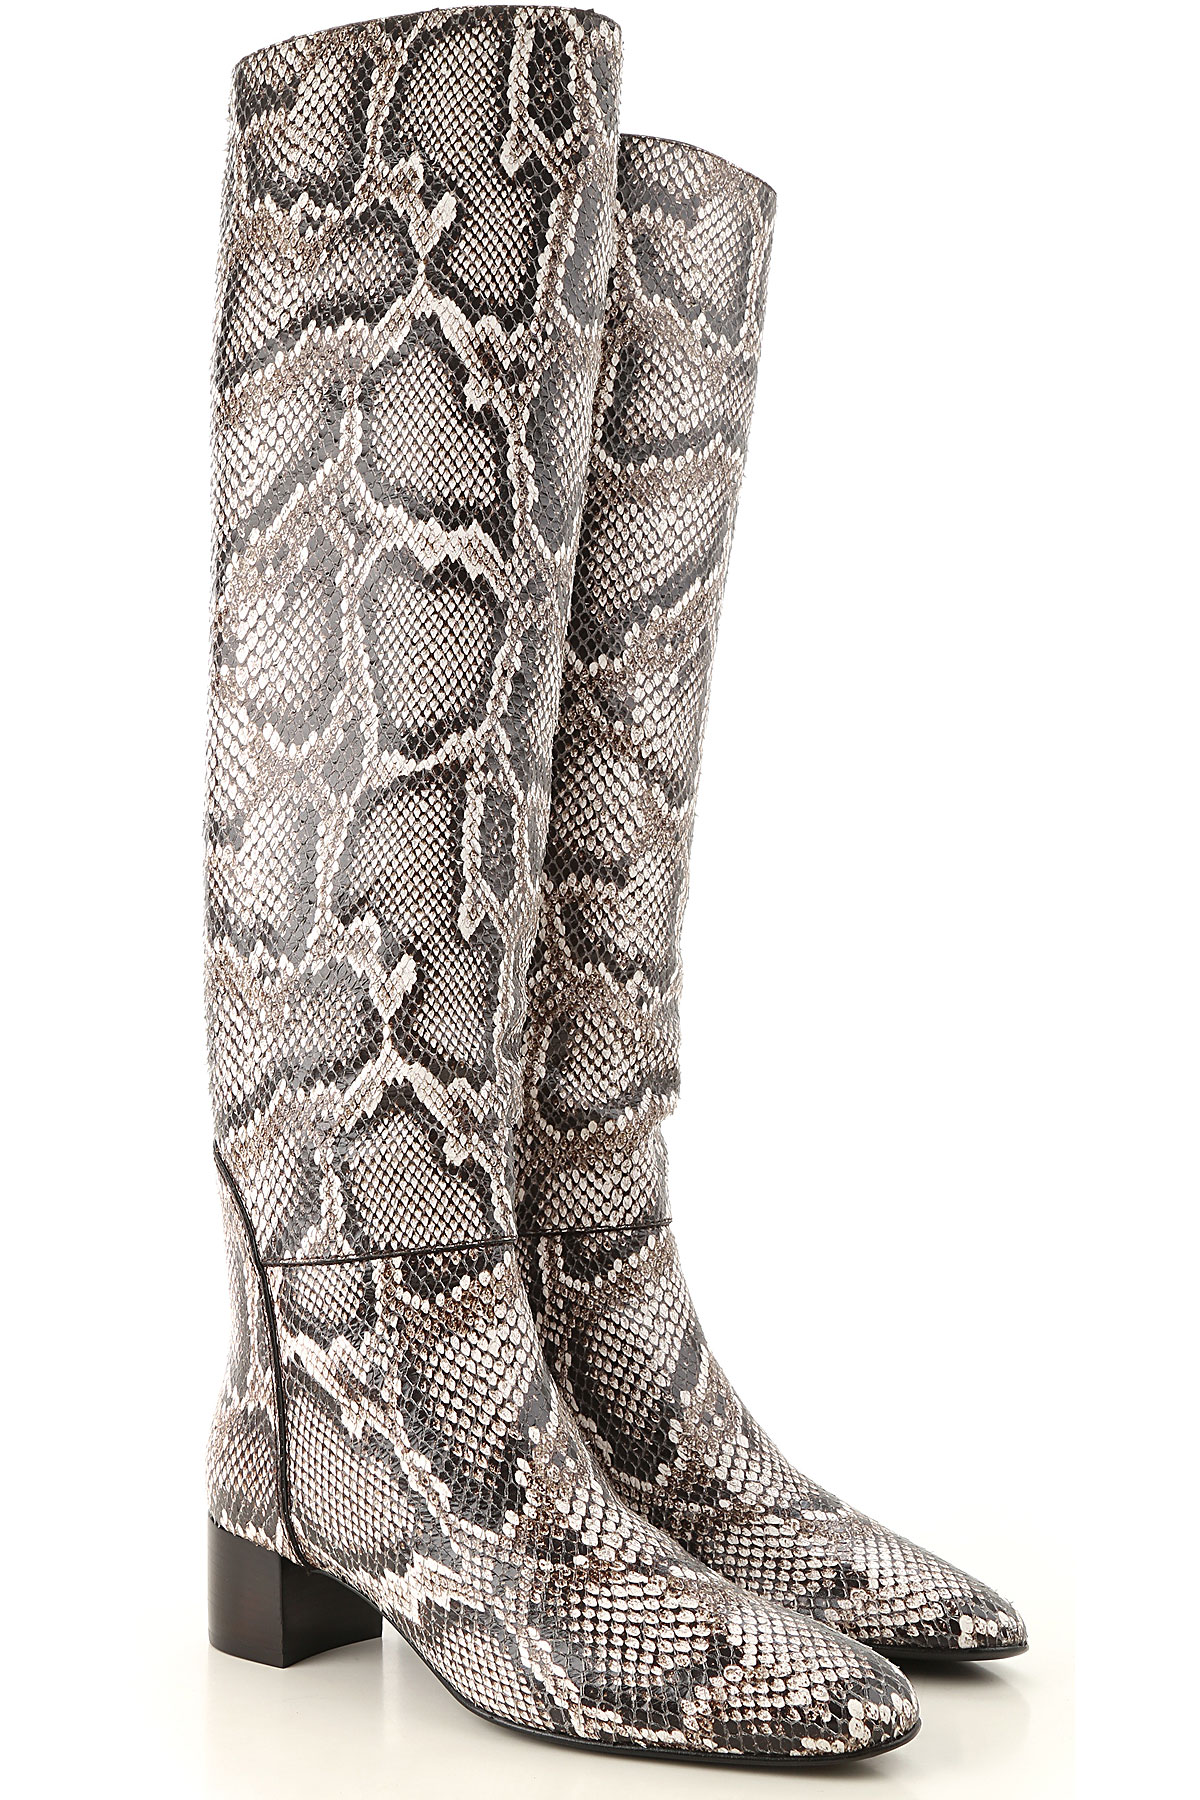 Giuseppe Zanotti Design Boots For Women, Booties, Rock, Leather, 2019, 3.5 5.5 6.5